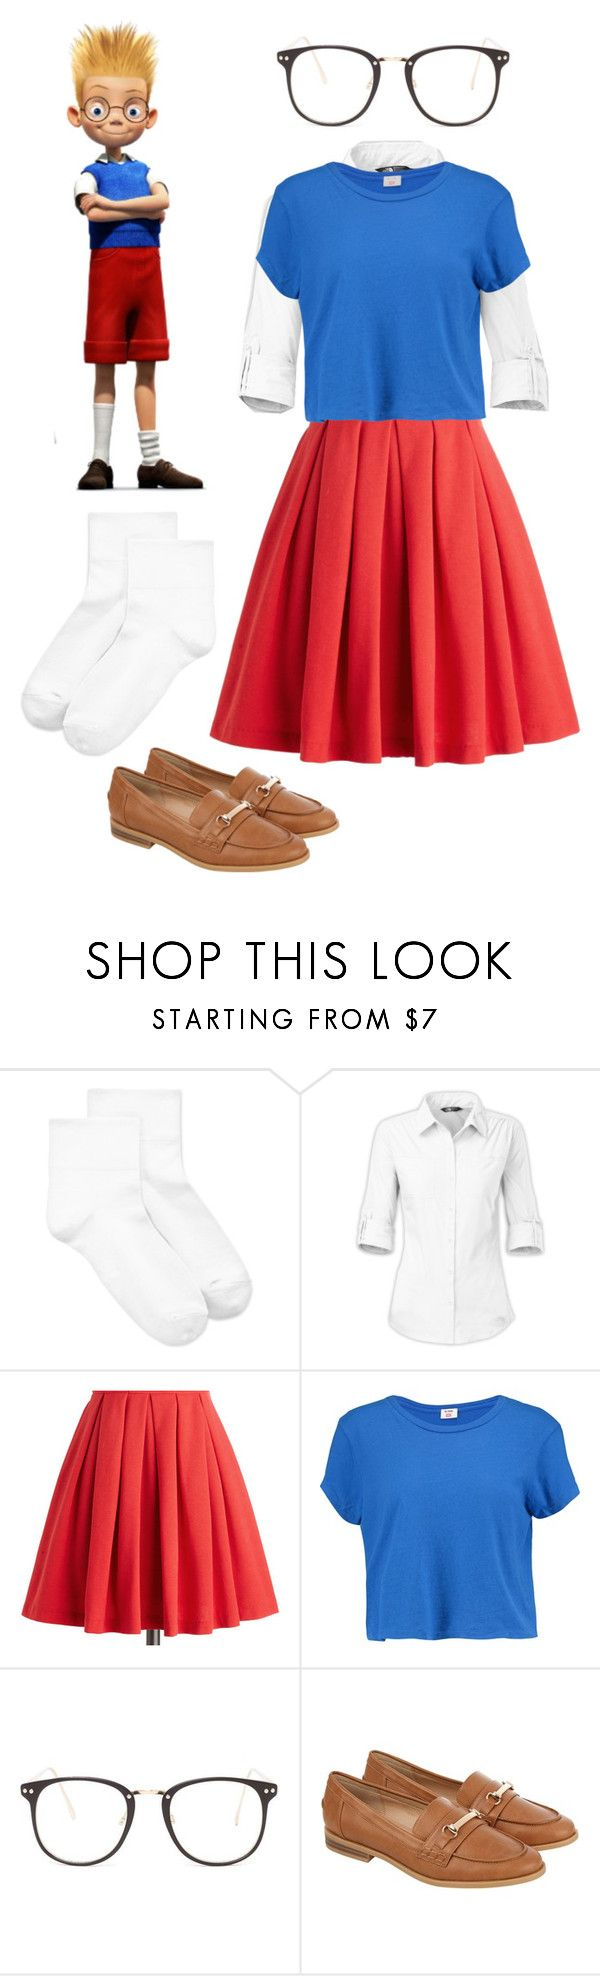 """""""Disney-bound // meet the robinsons/gender swap"""" by browneyedbeautiful ❤ liked on Polyvore featuring Disney, HUE, The North Face, RE/DONE, Nasty Gal and Accessorize"""